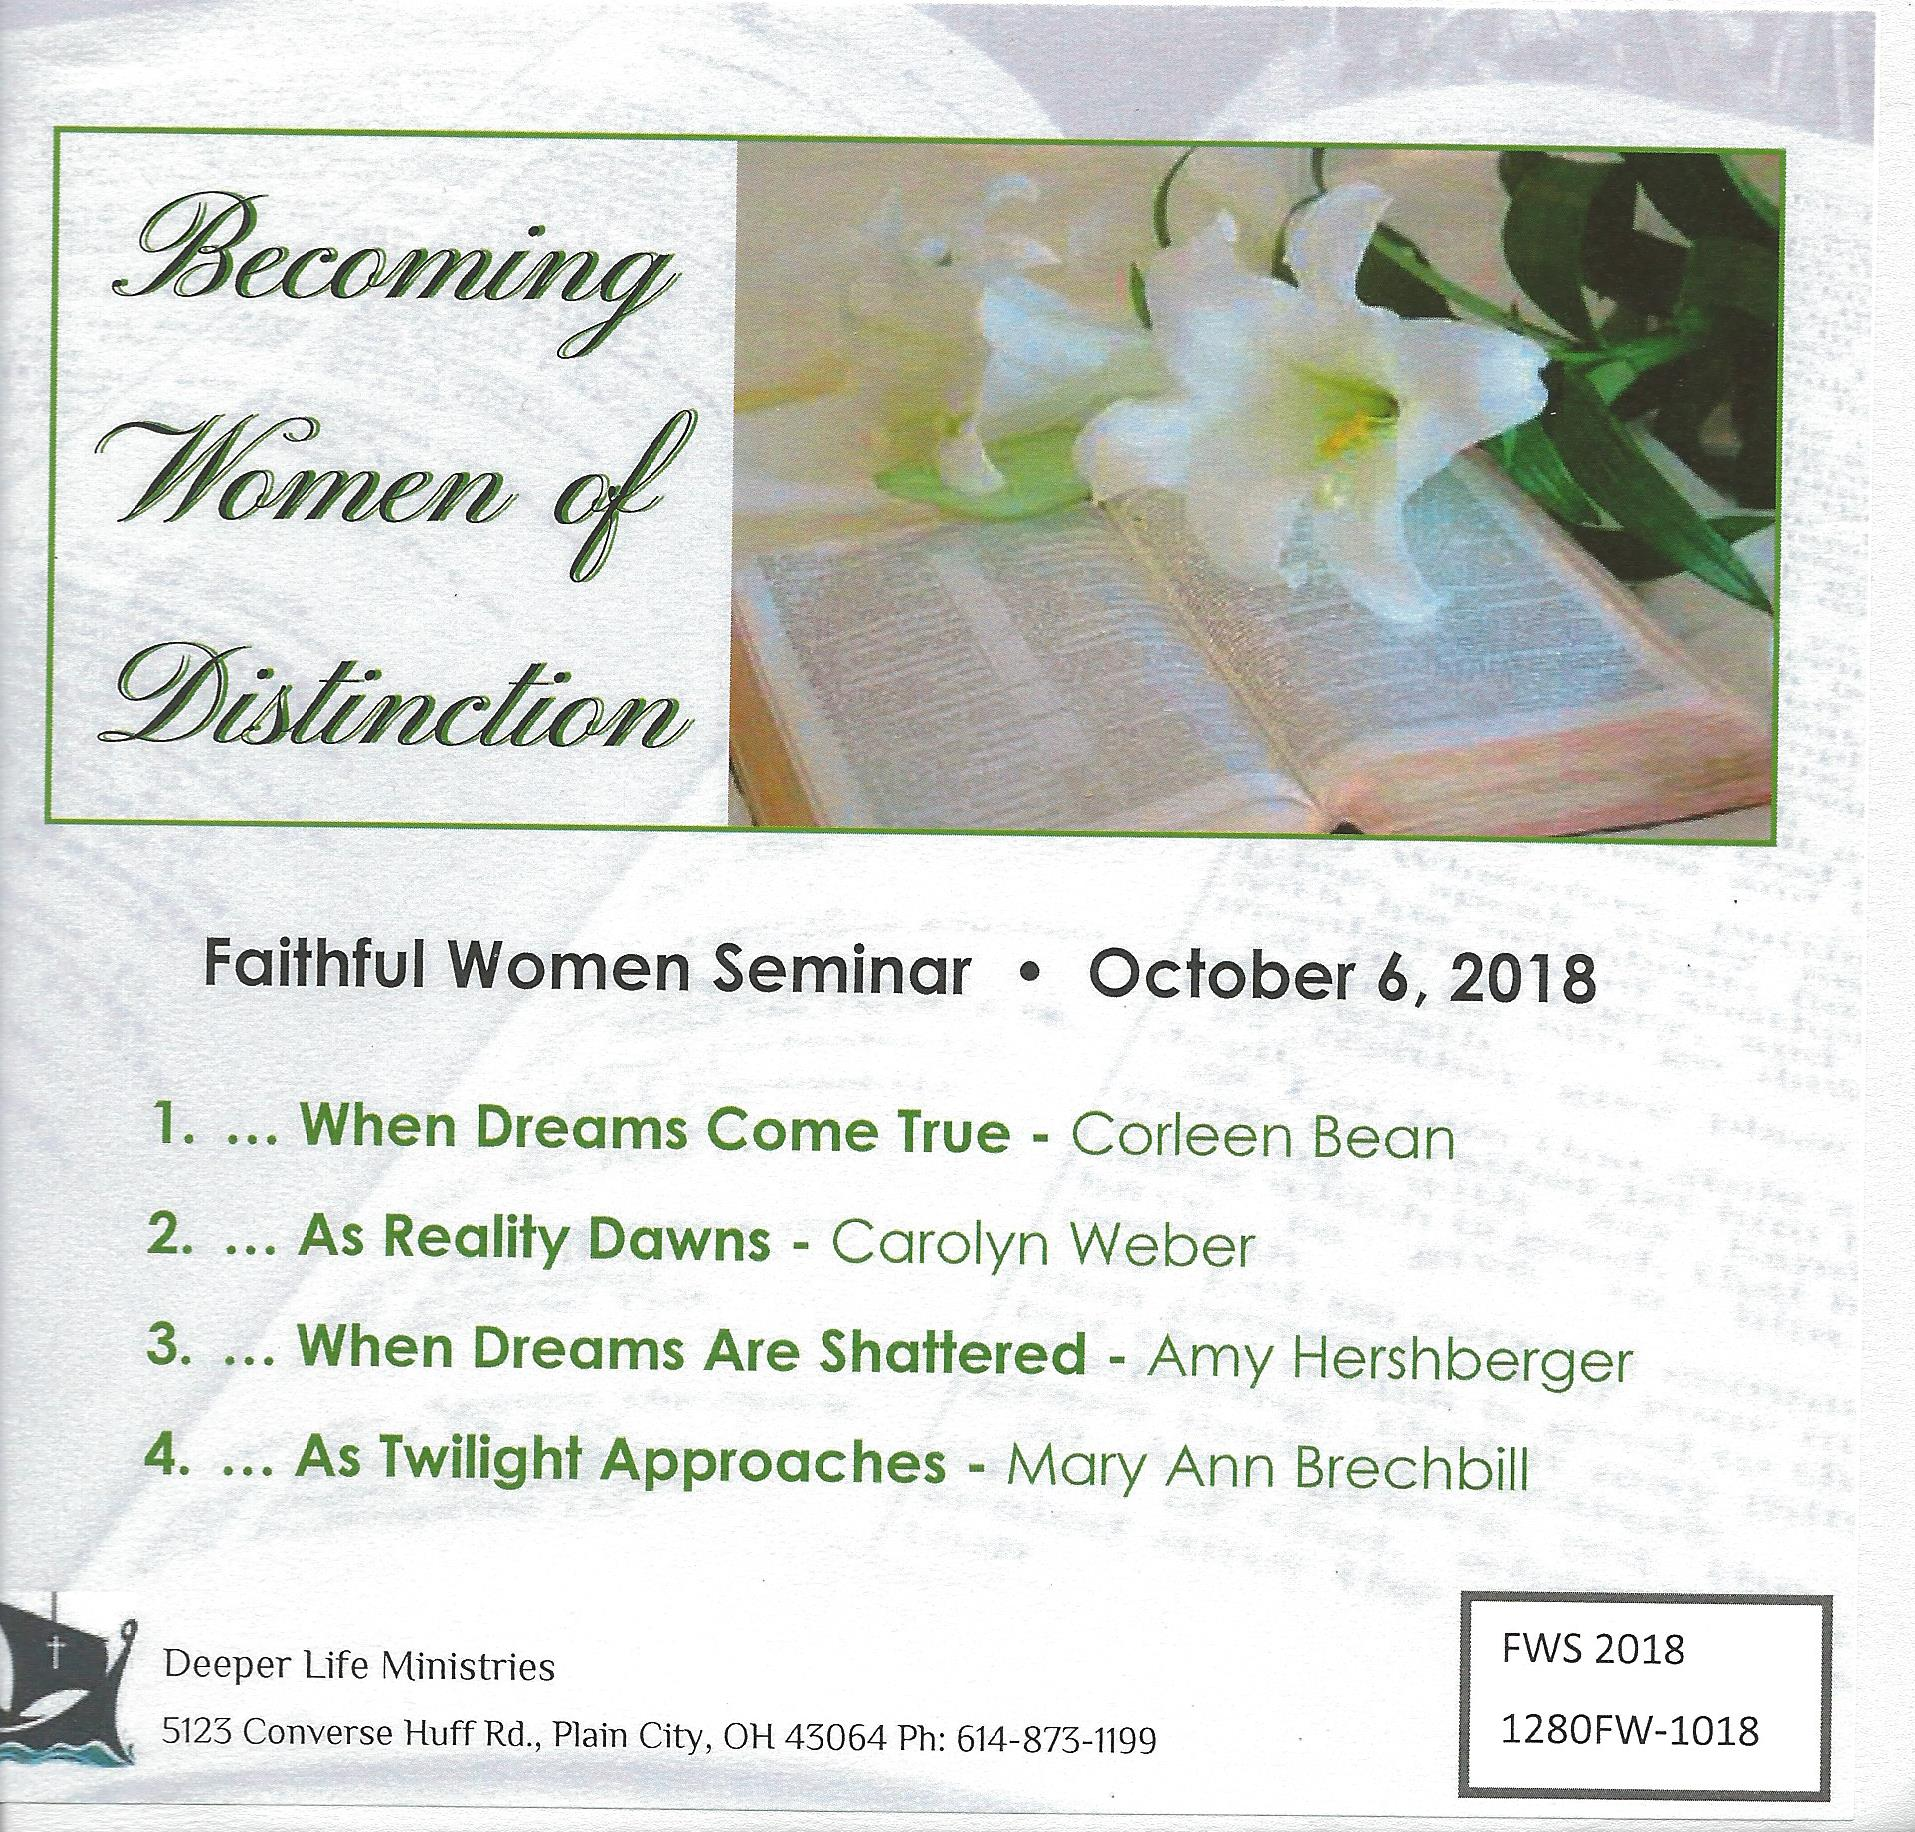 FAITHFUL WOMEN SEMINAR CDS 2018 Various Speakers